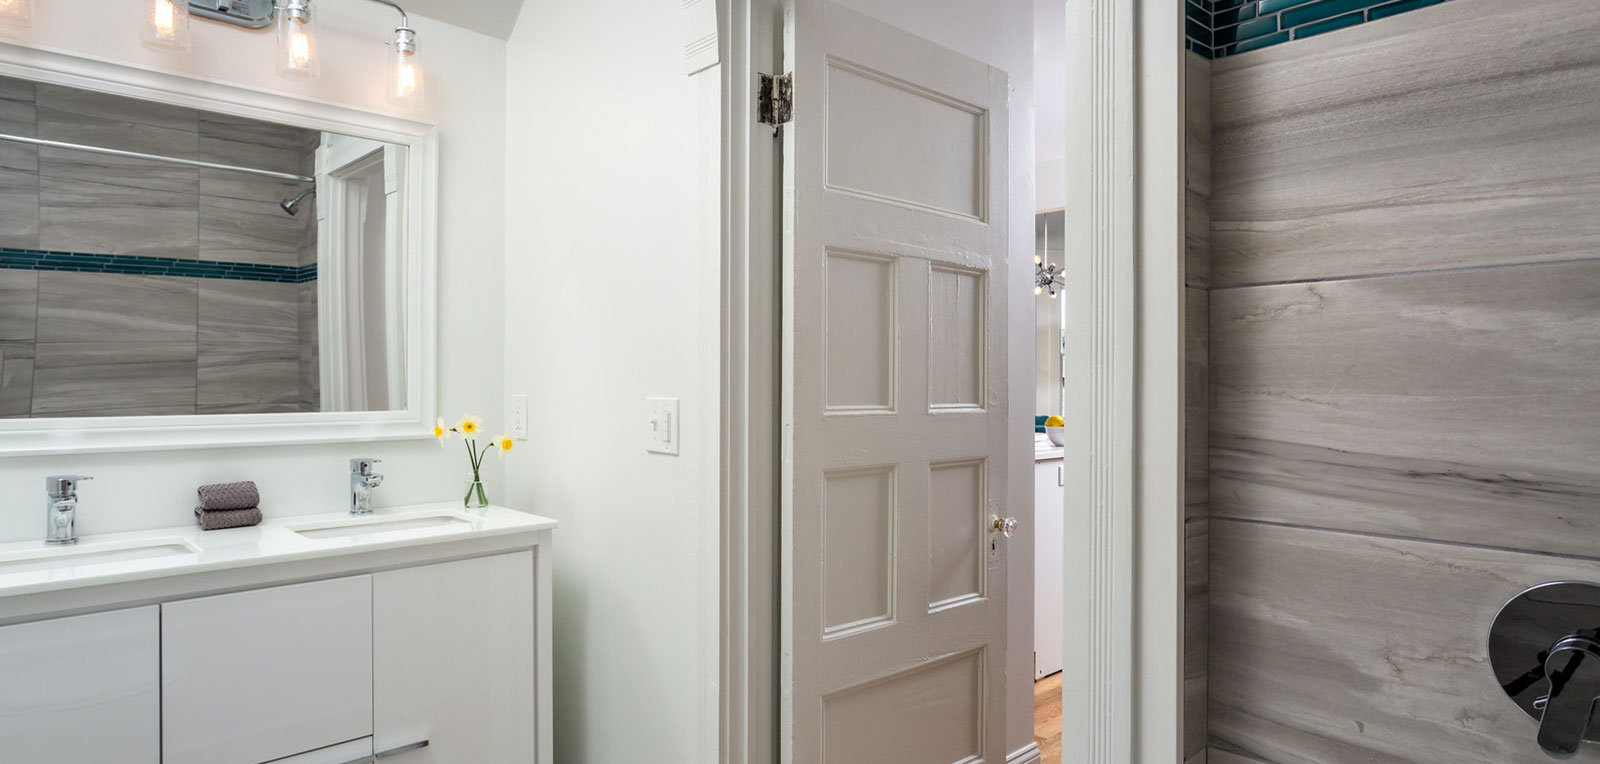 1BR Apartment Bathroom | ADMIRAL SIMS B&B, Newport Rhode Island